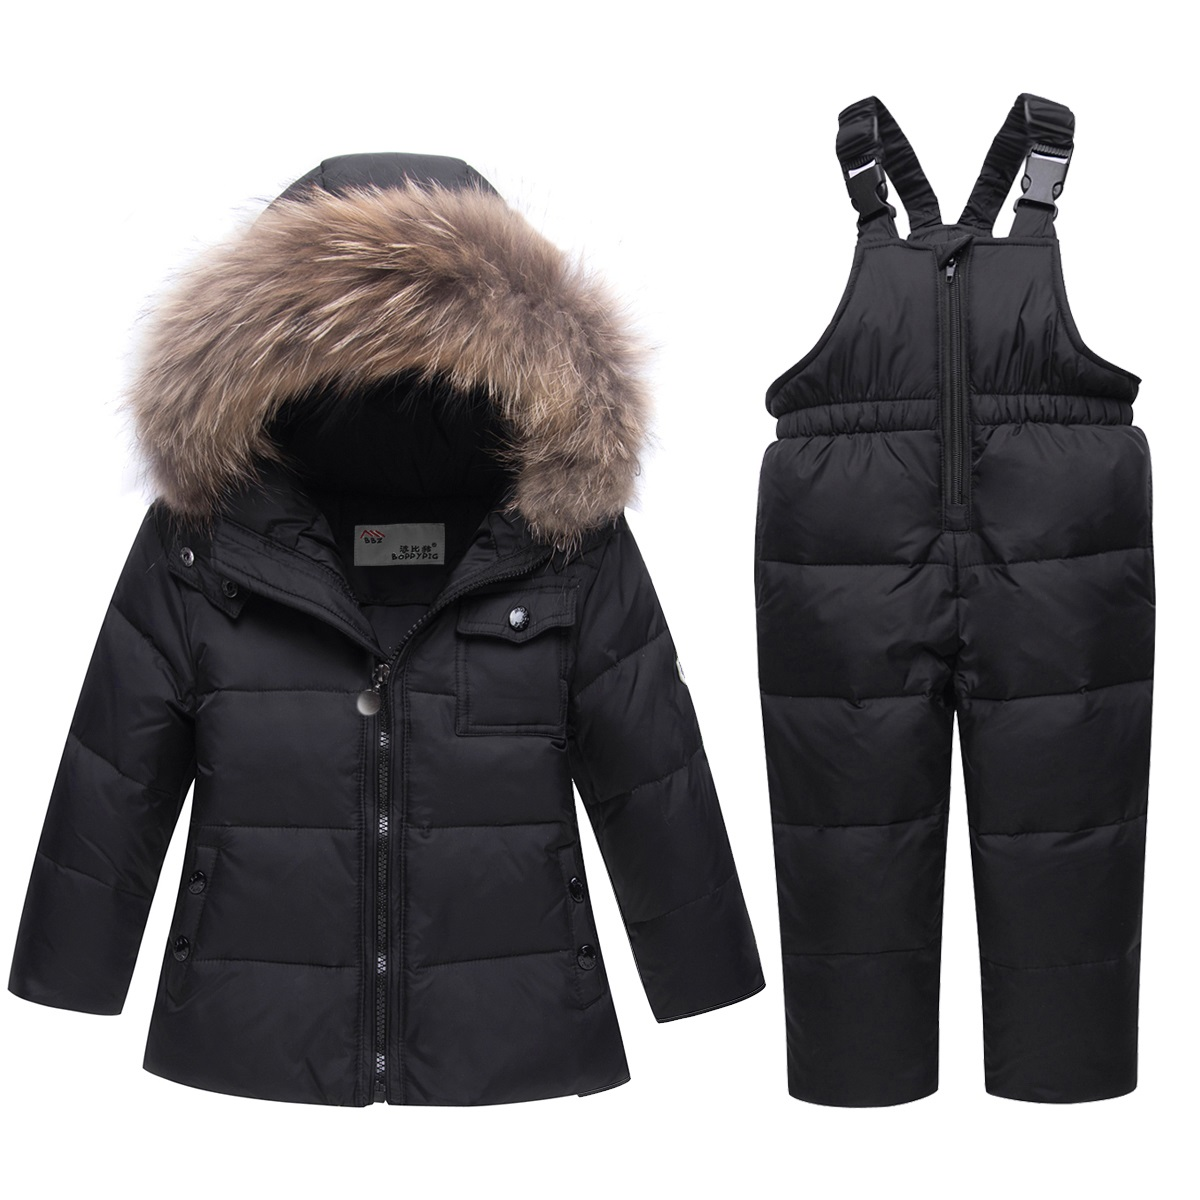 цена на OLEKID -30 Degree Winter children Boys Clothes set Warm Down Jacket Coat + Jumpsuit For Girl 1-5 Years Kids Baby Girl Snowsuit